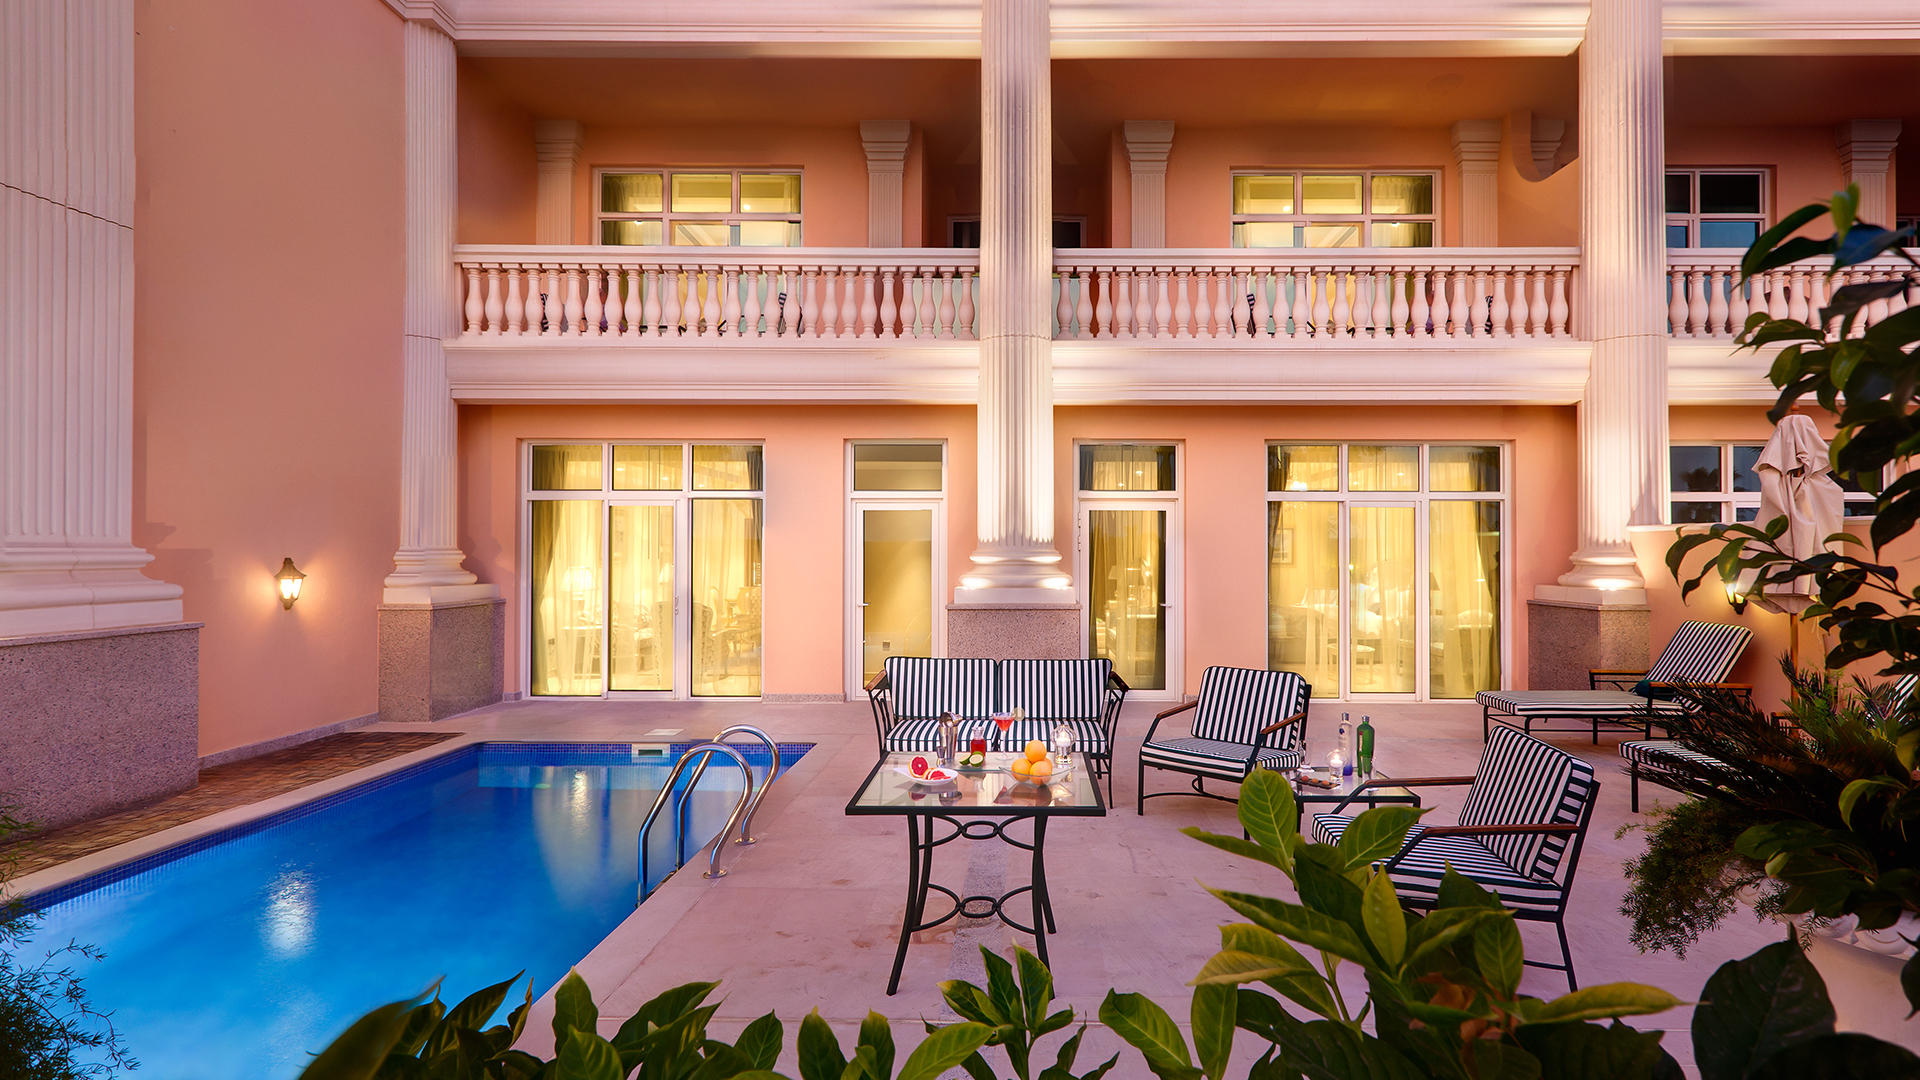 Hotels with private pools in the uae your money the for Hotels with private pool in dubai